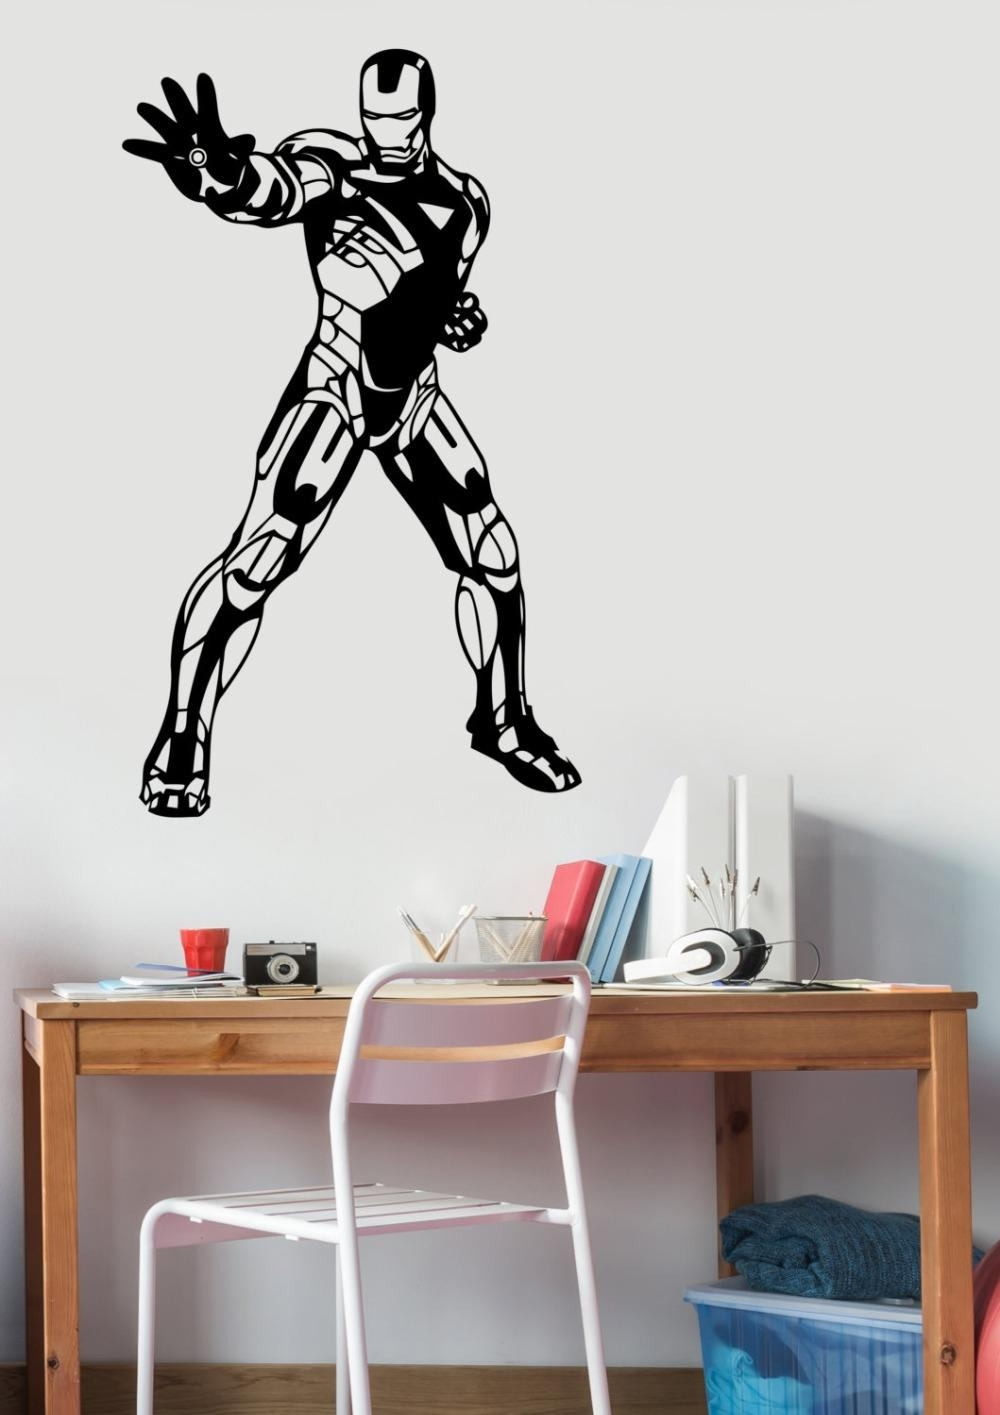 Compare Prices On Wall Art Stickers Superhero  Online Shopping/buy With Superhero Wall Art Stickers (Image 7 of 20)